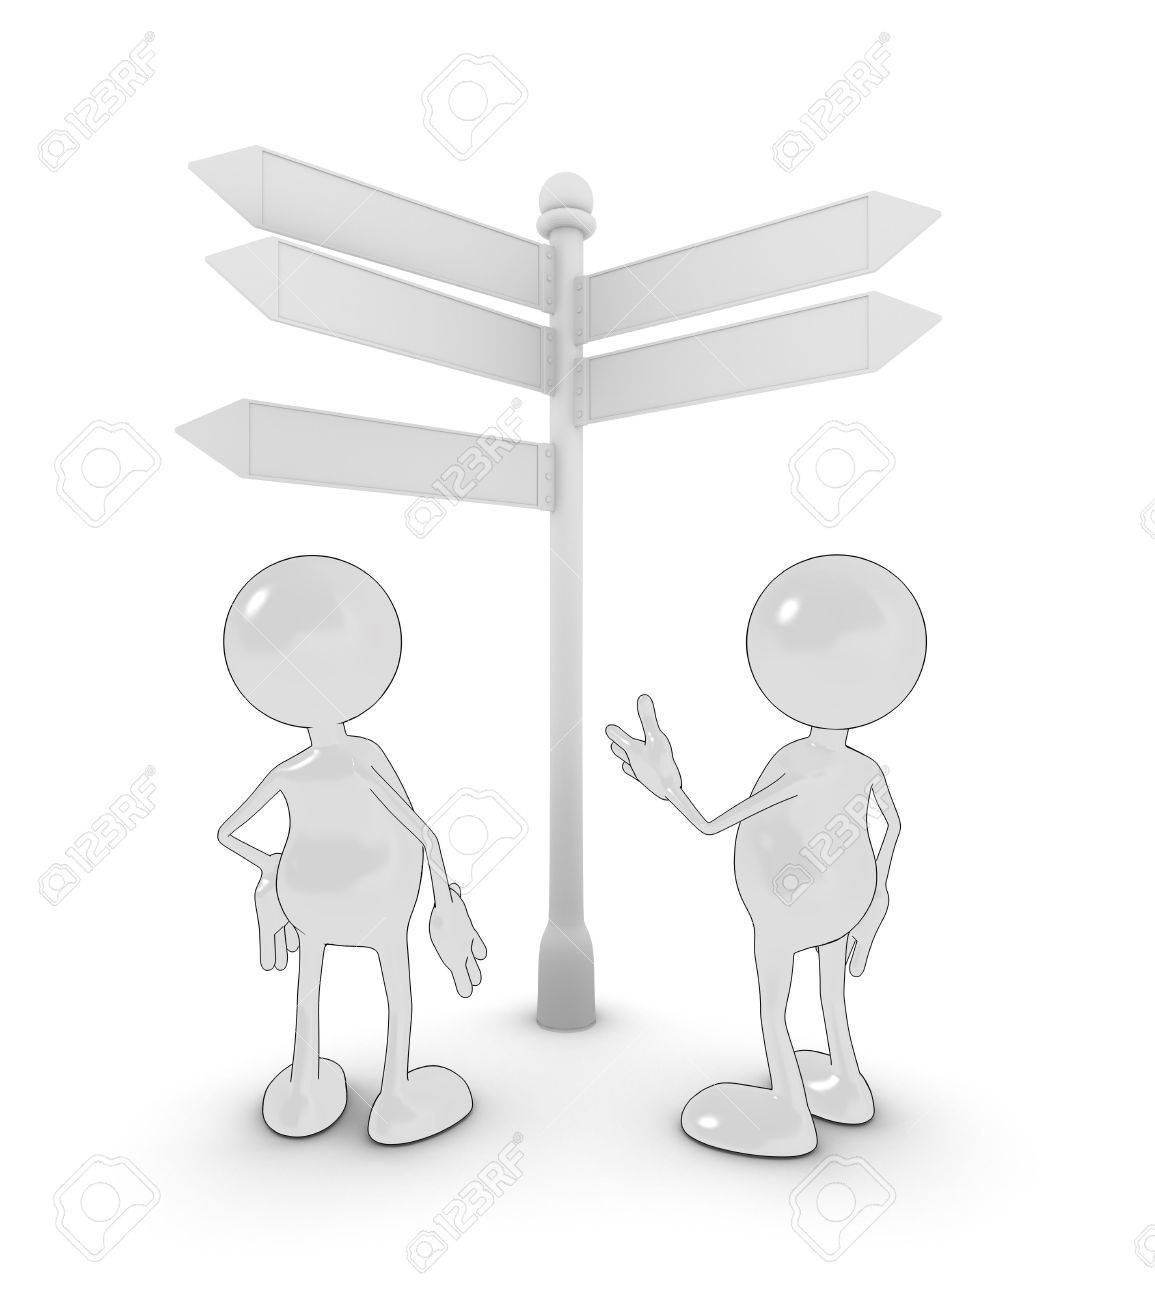 3d cartoon characters looking at a sign for directions. Please see my portfolio for more in the series. Stock Photo - 5700300